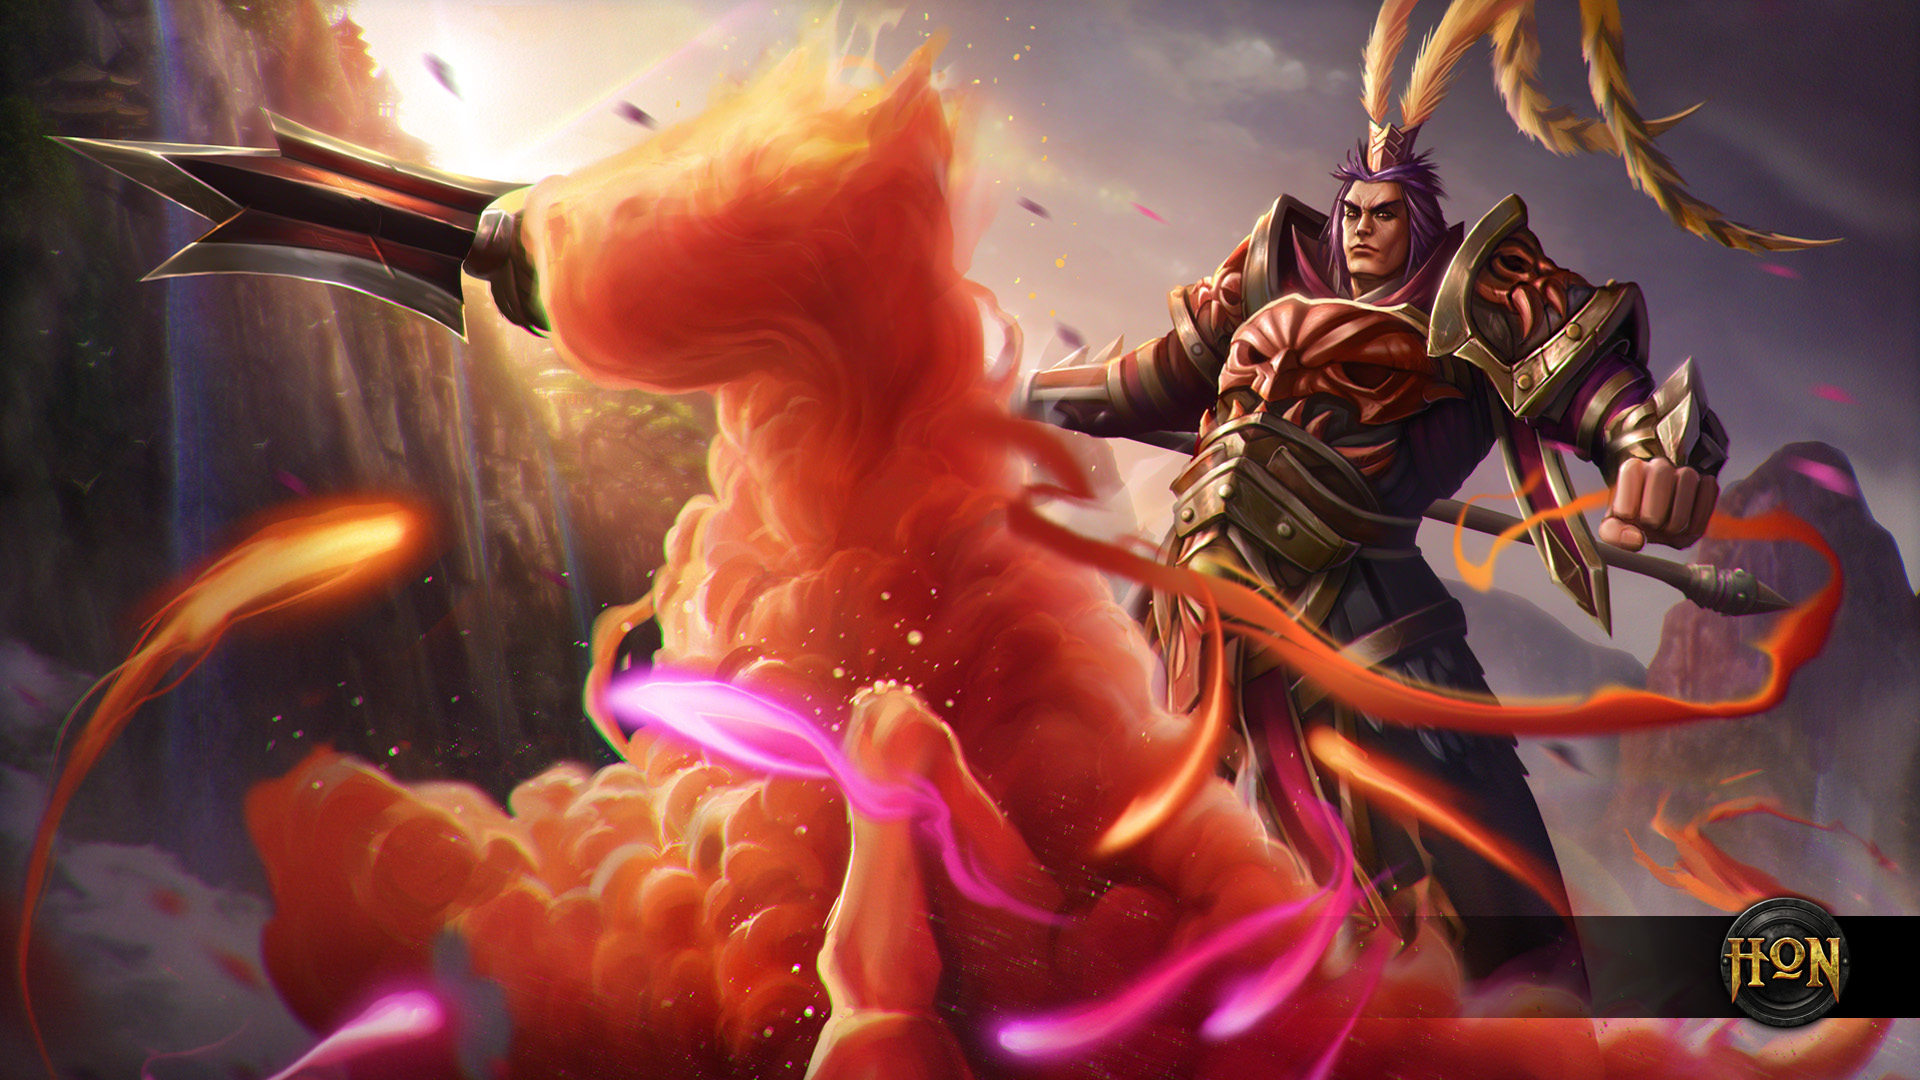 Free Download Lu Bu Monkey King Wallpaper Heroes Of Newerth Lore